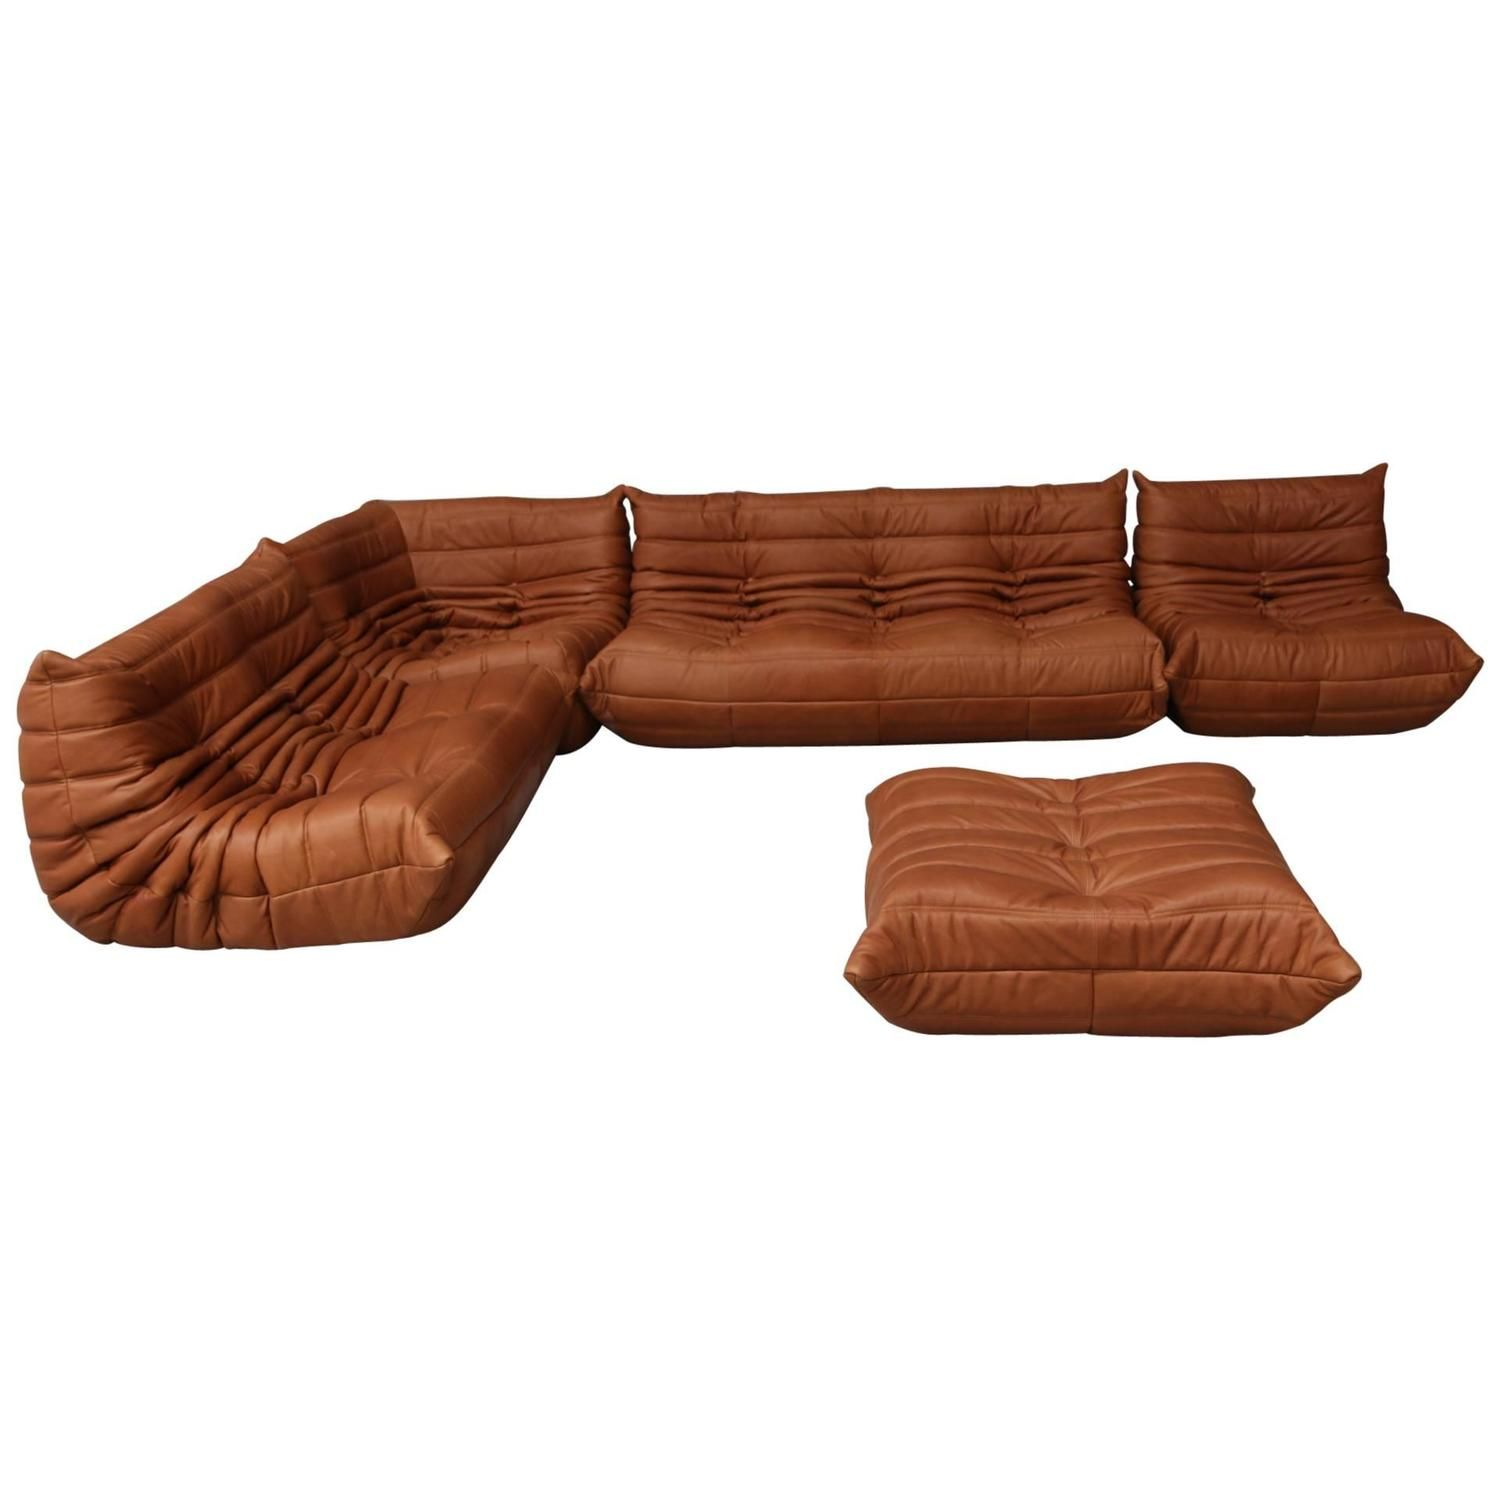 Vintage Ligne Roset Togo Set Reupholstered in Vintage Cognac Leather